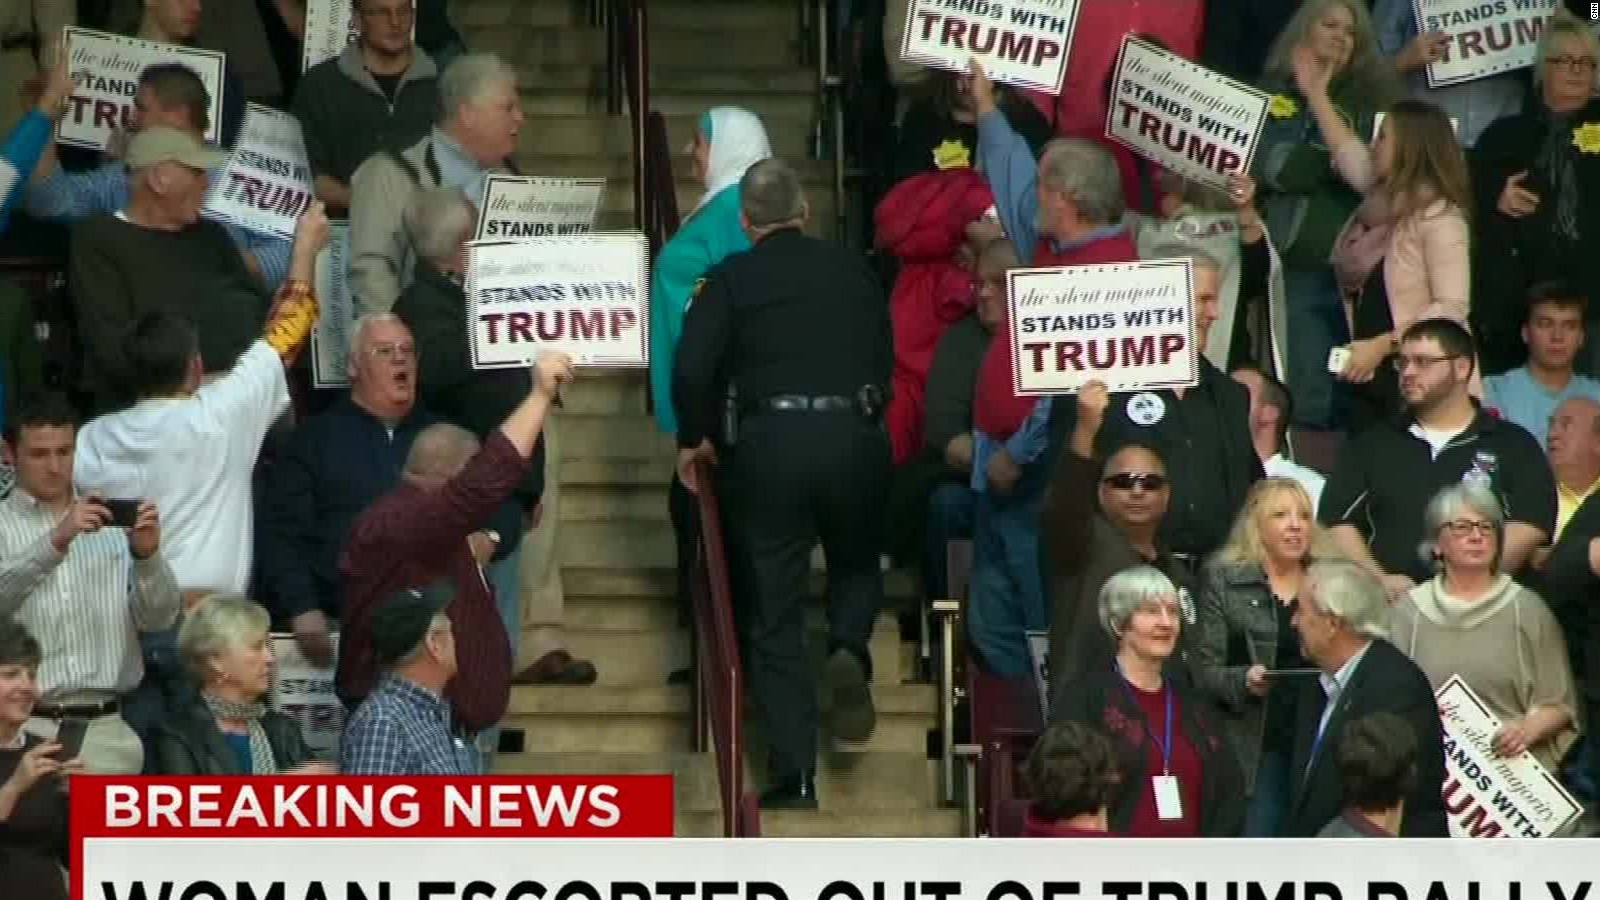 Silently protesting Muslim woman ejected from Trump rally